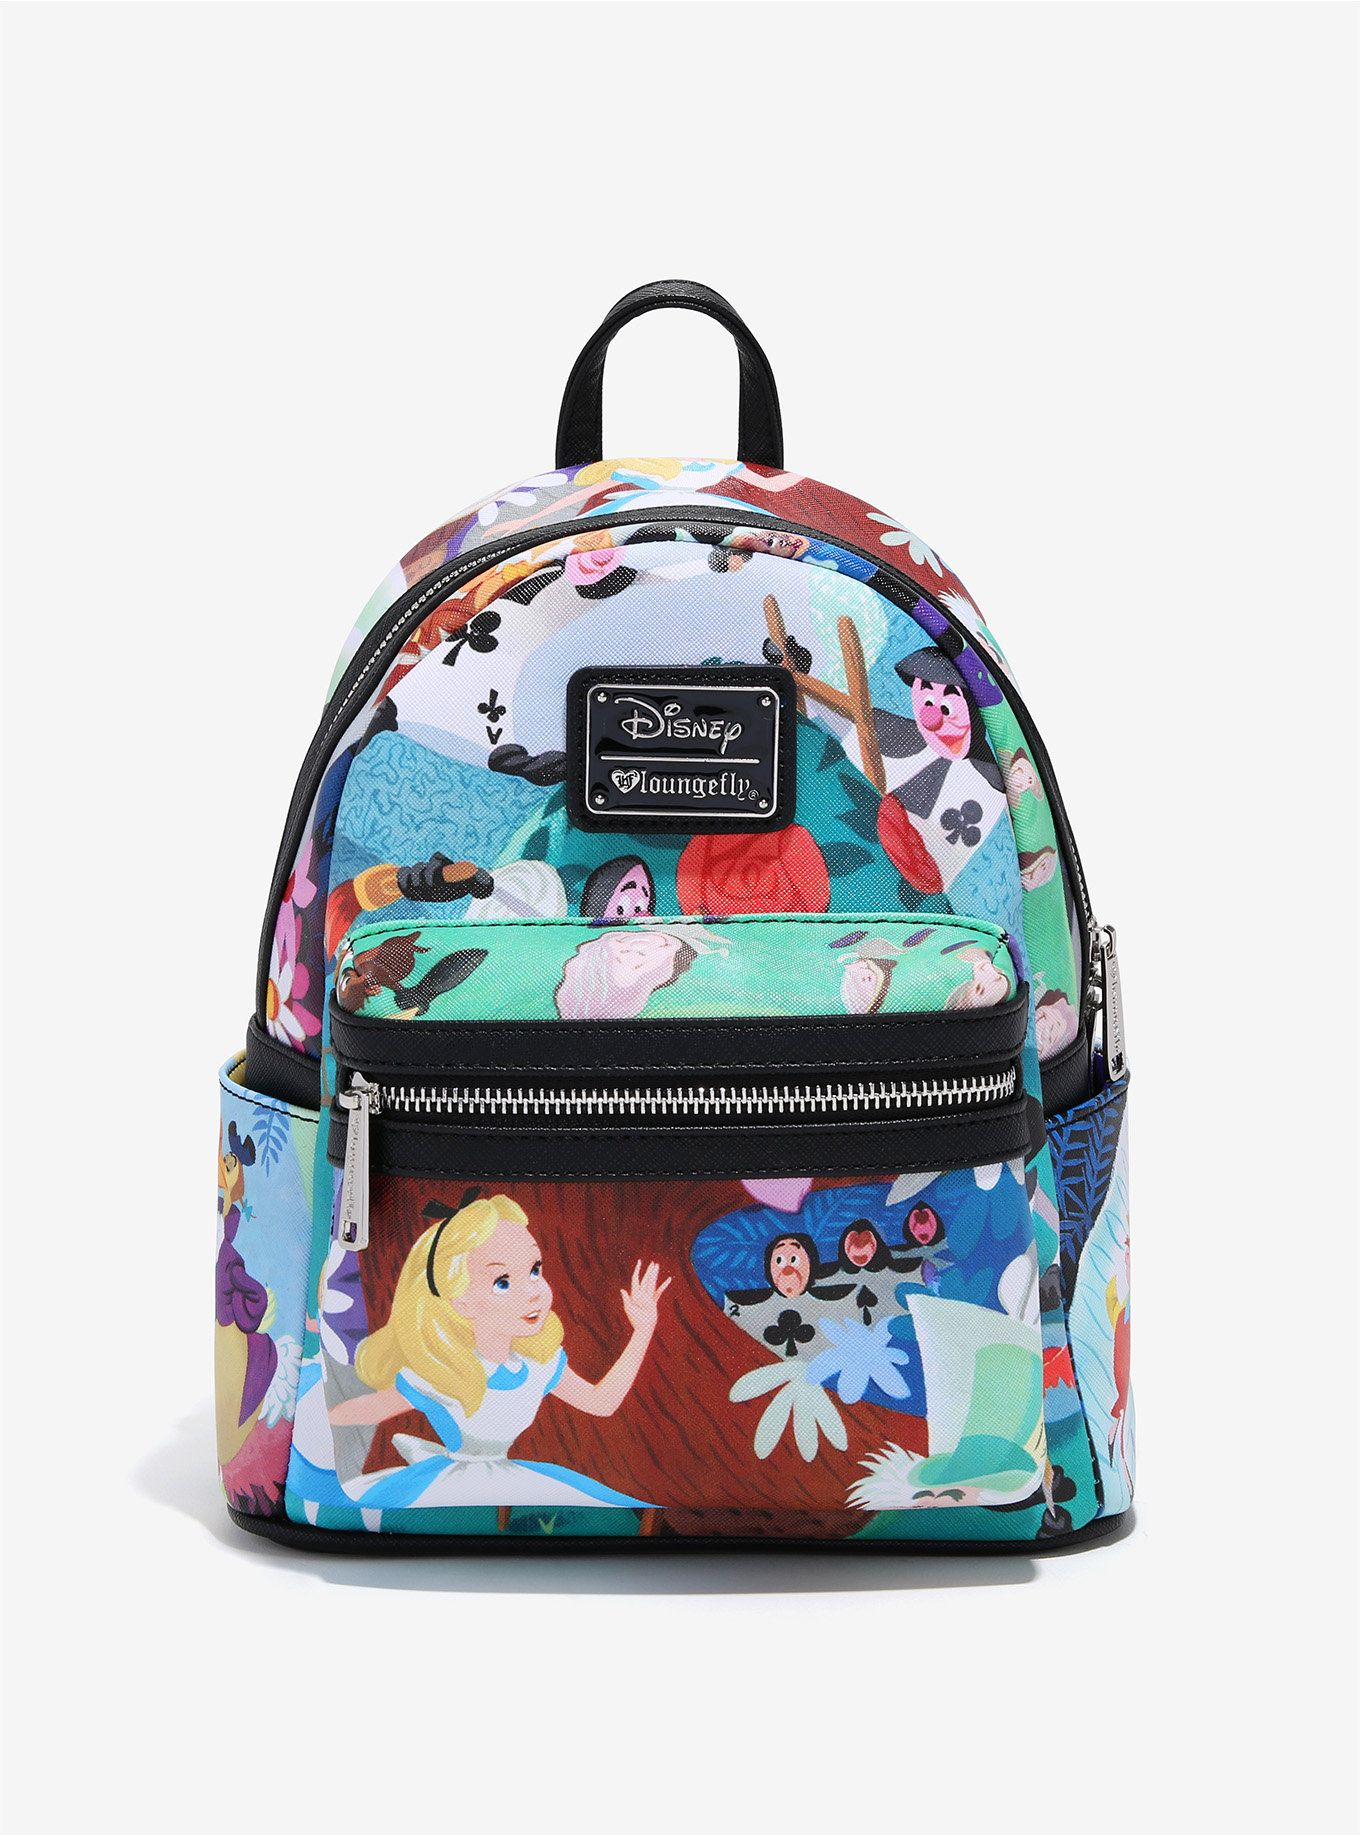 Loungefly Disney Alice In Wonderland Mary Blair Mini Backpack - BoxLunch  Exclusive, 2bcf74c8c89